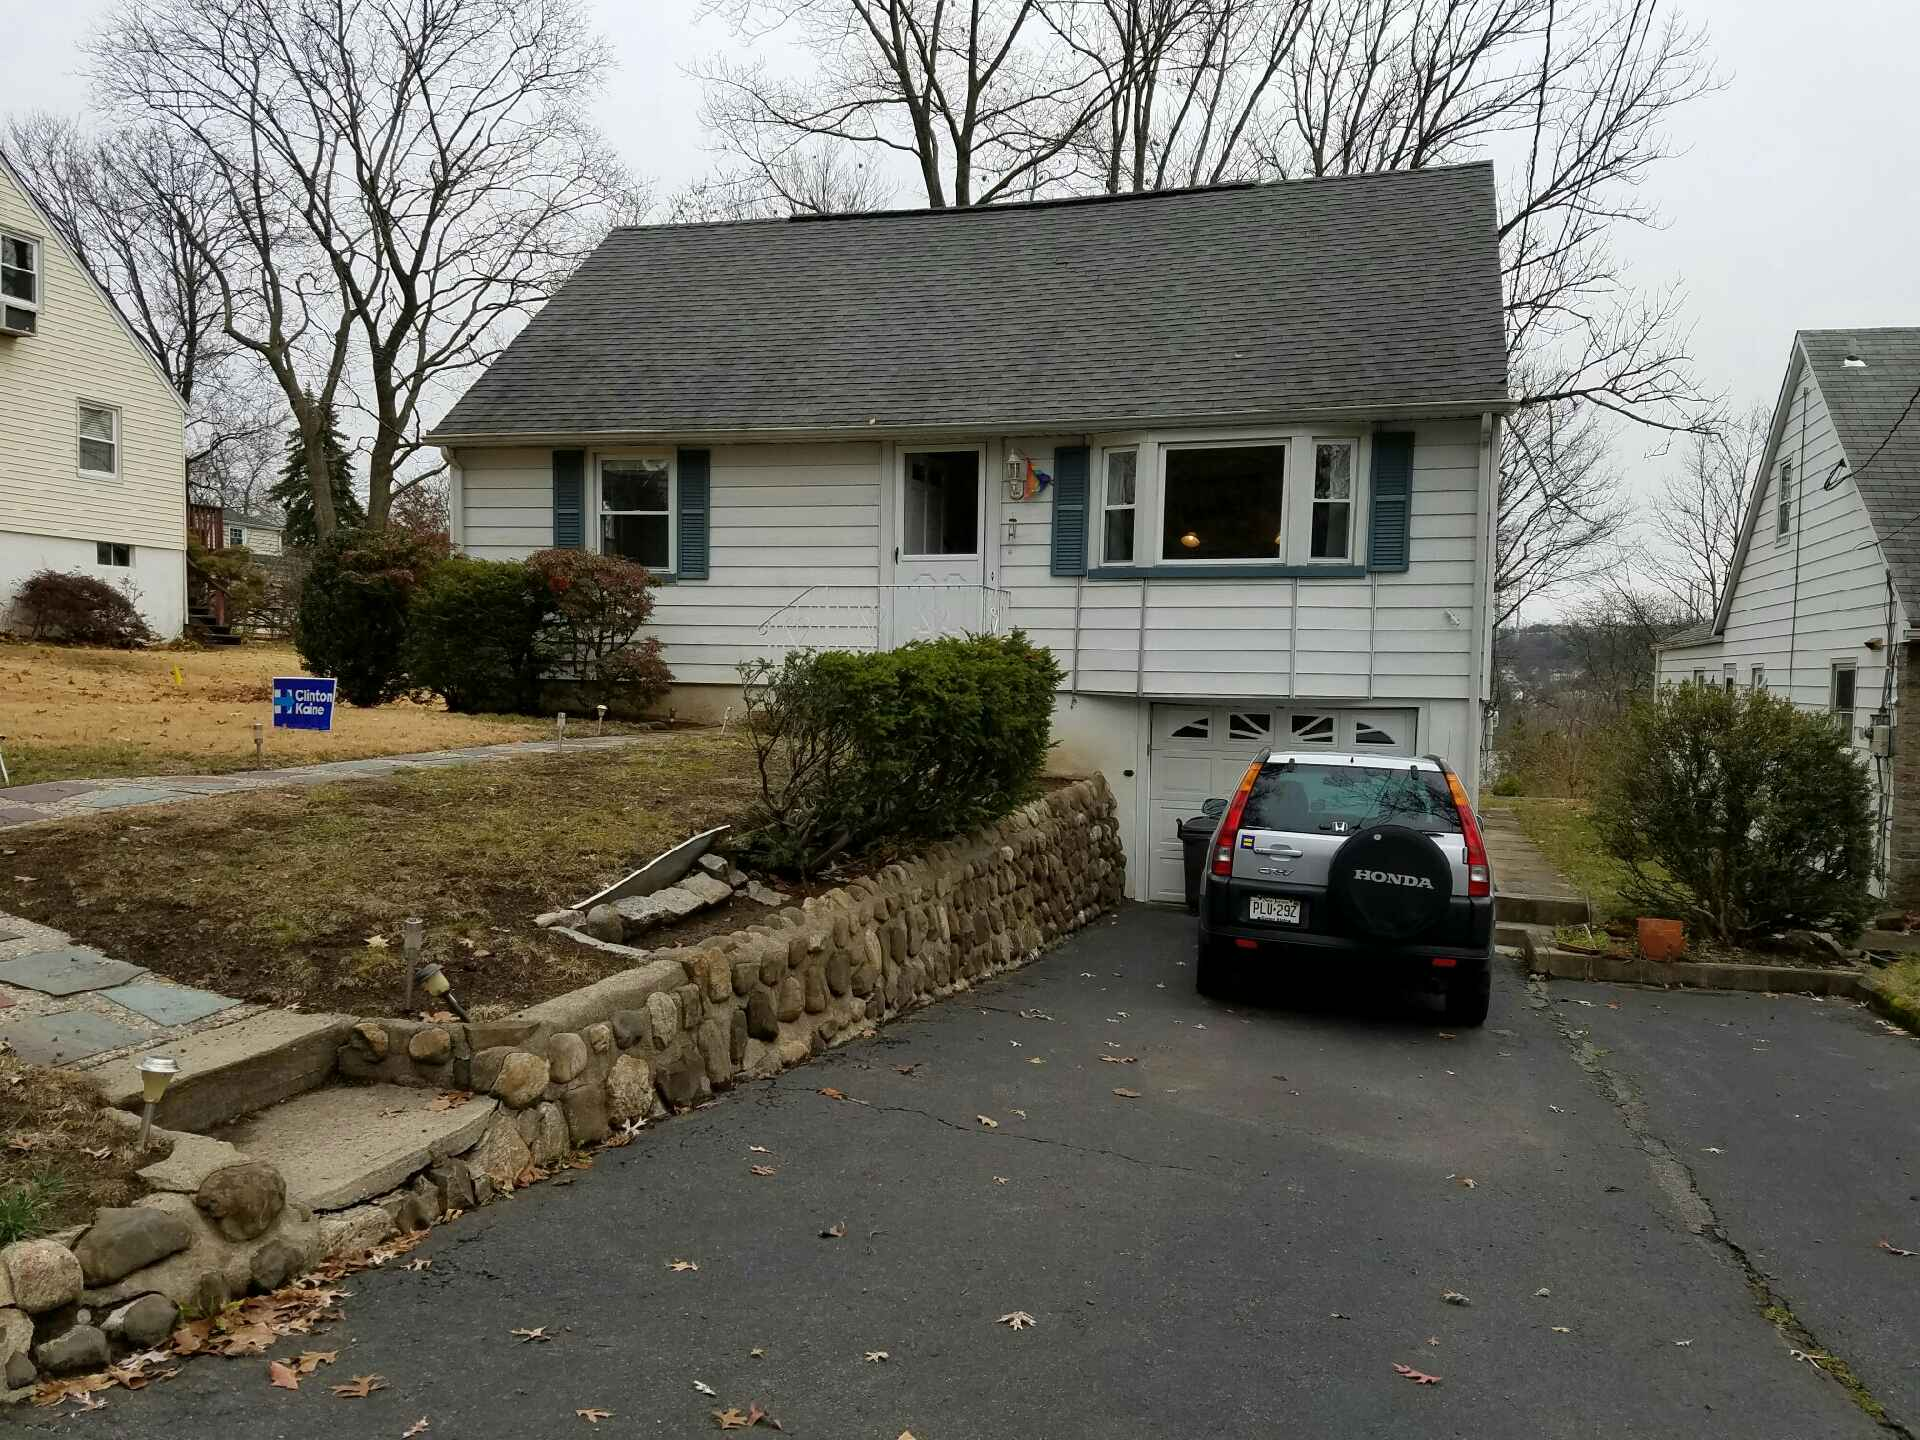 New Listing For Sale in West Orange Coming Soon!